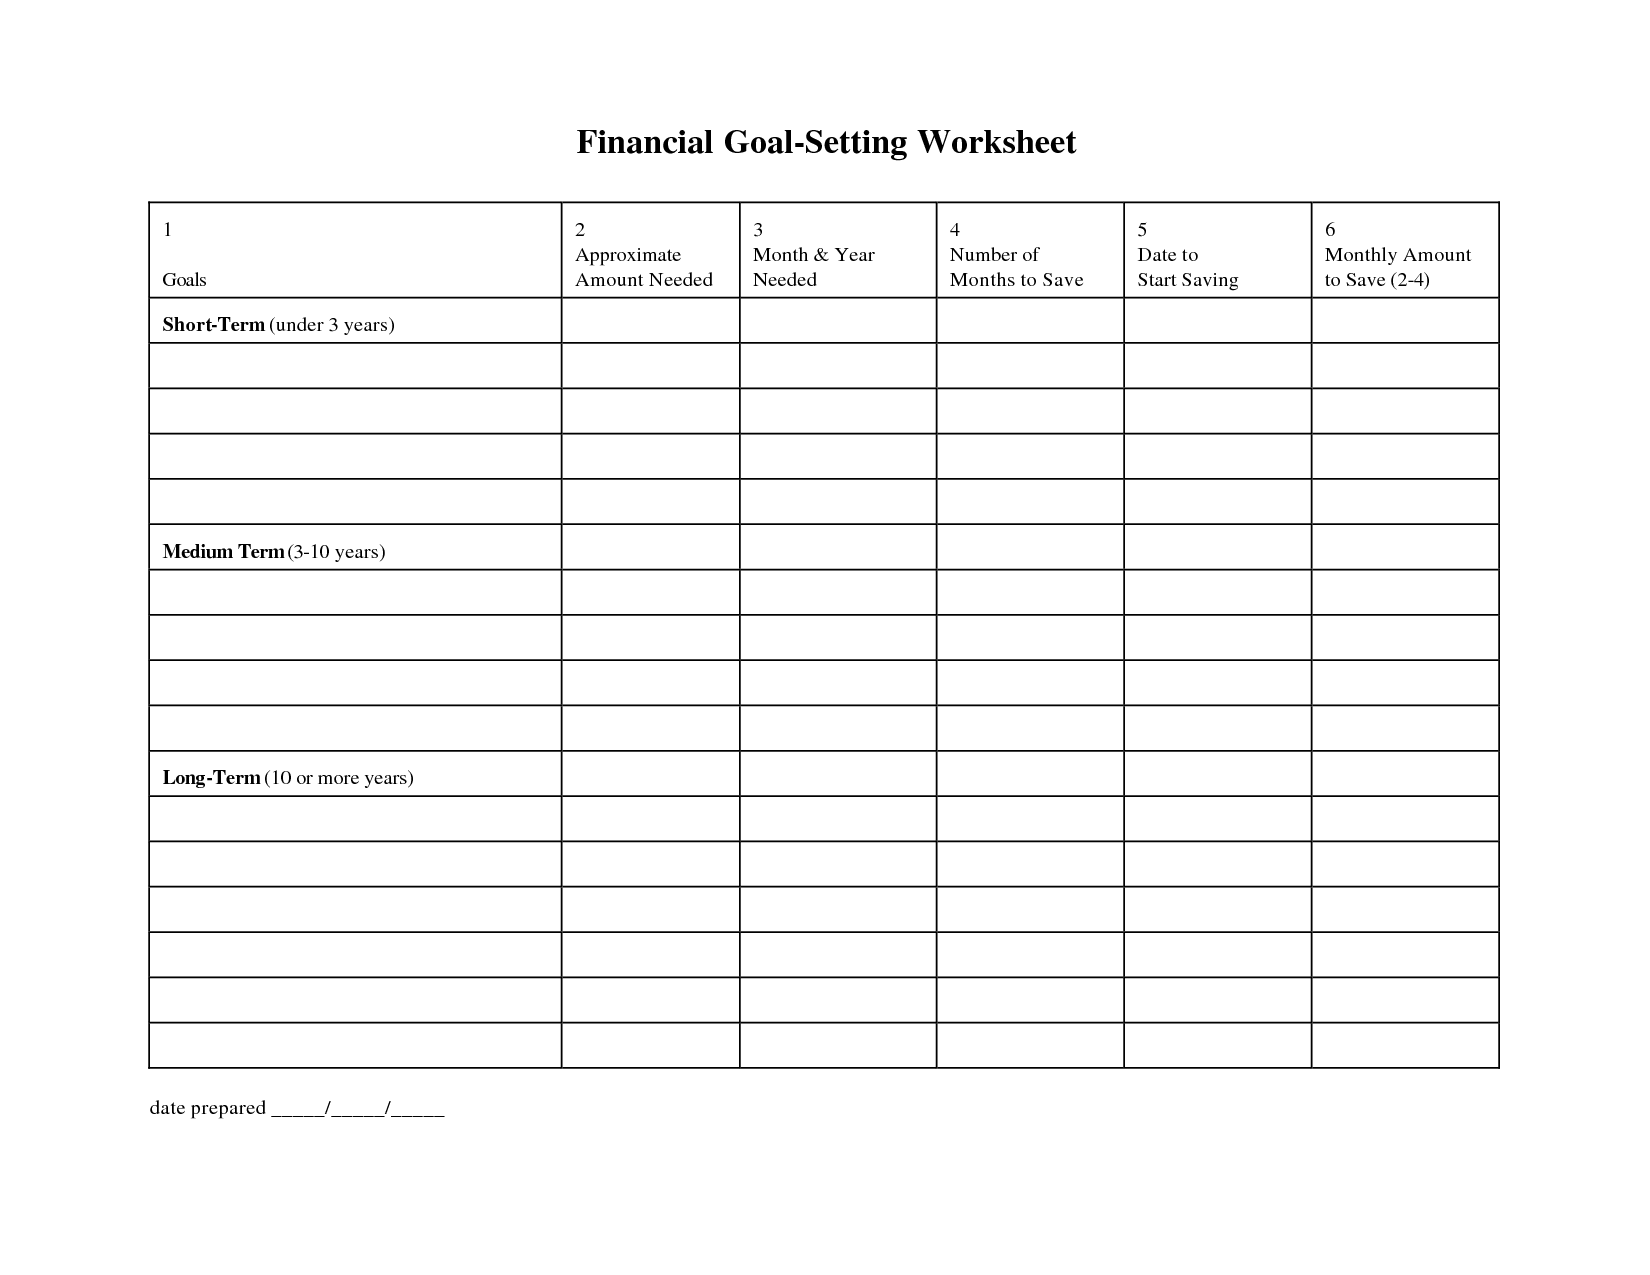 worksheet life planning worksheet worksheet career planning worksheet abitlikethis life management worksheets goals amp weekly goal setting planners